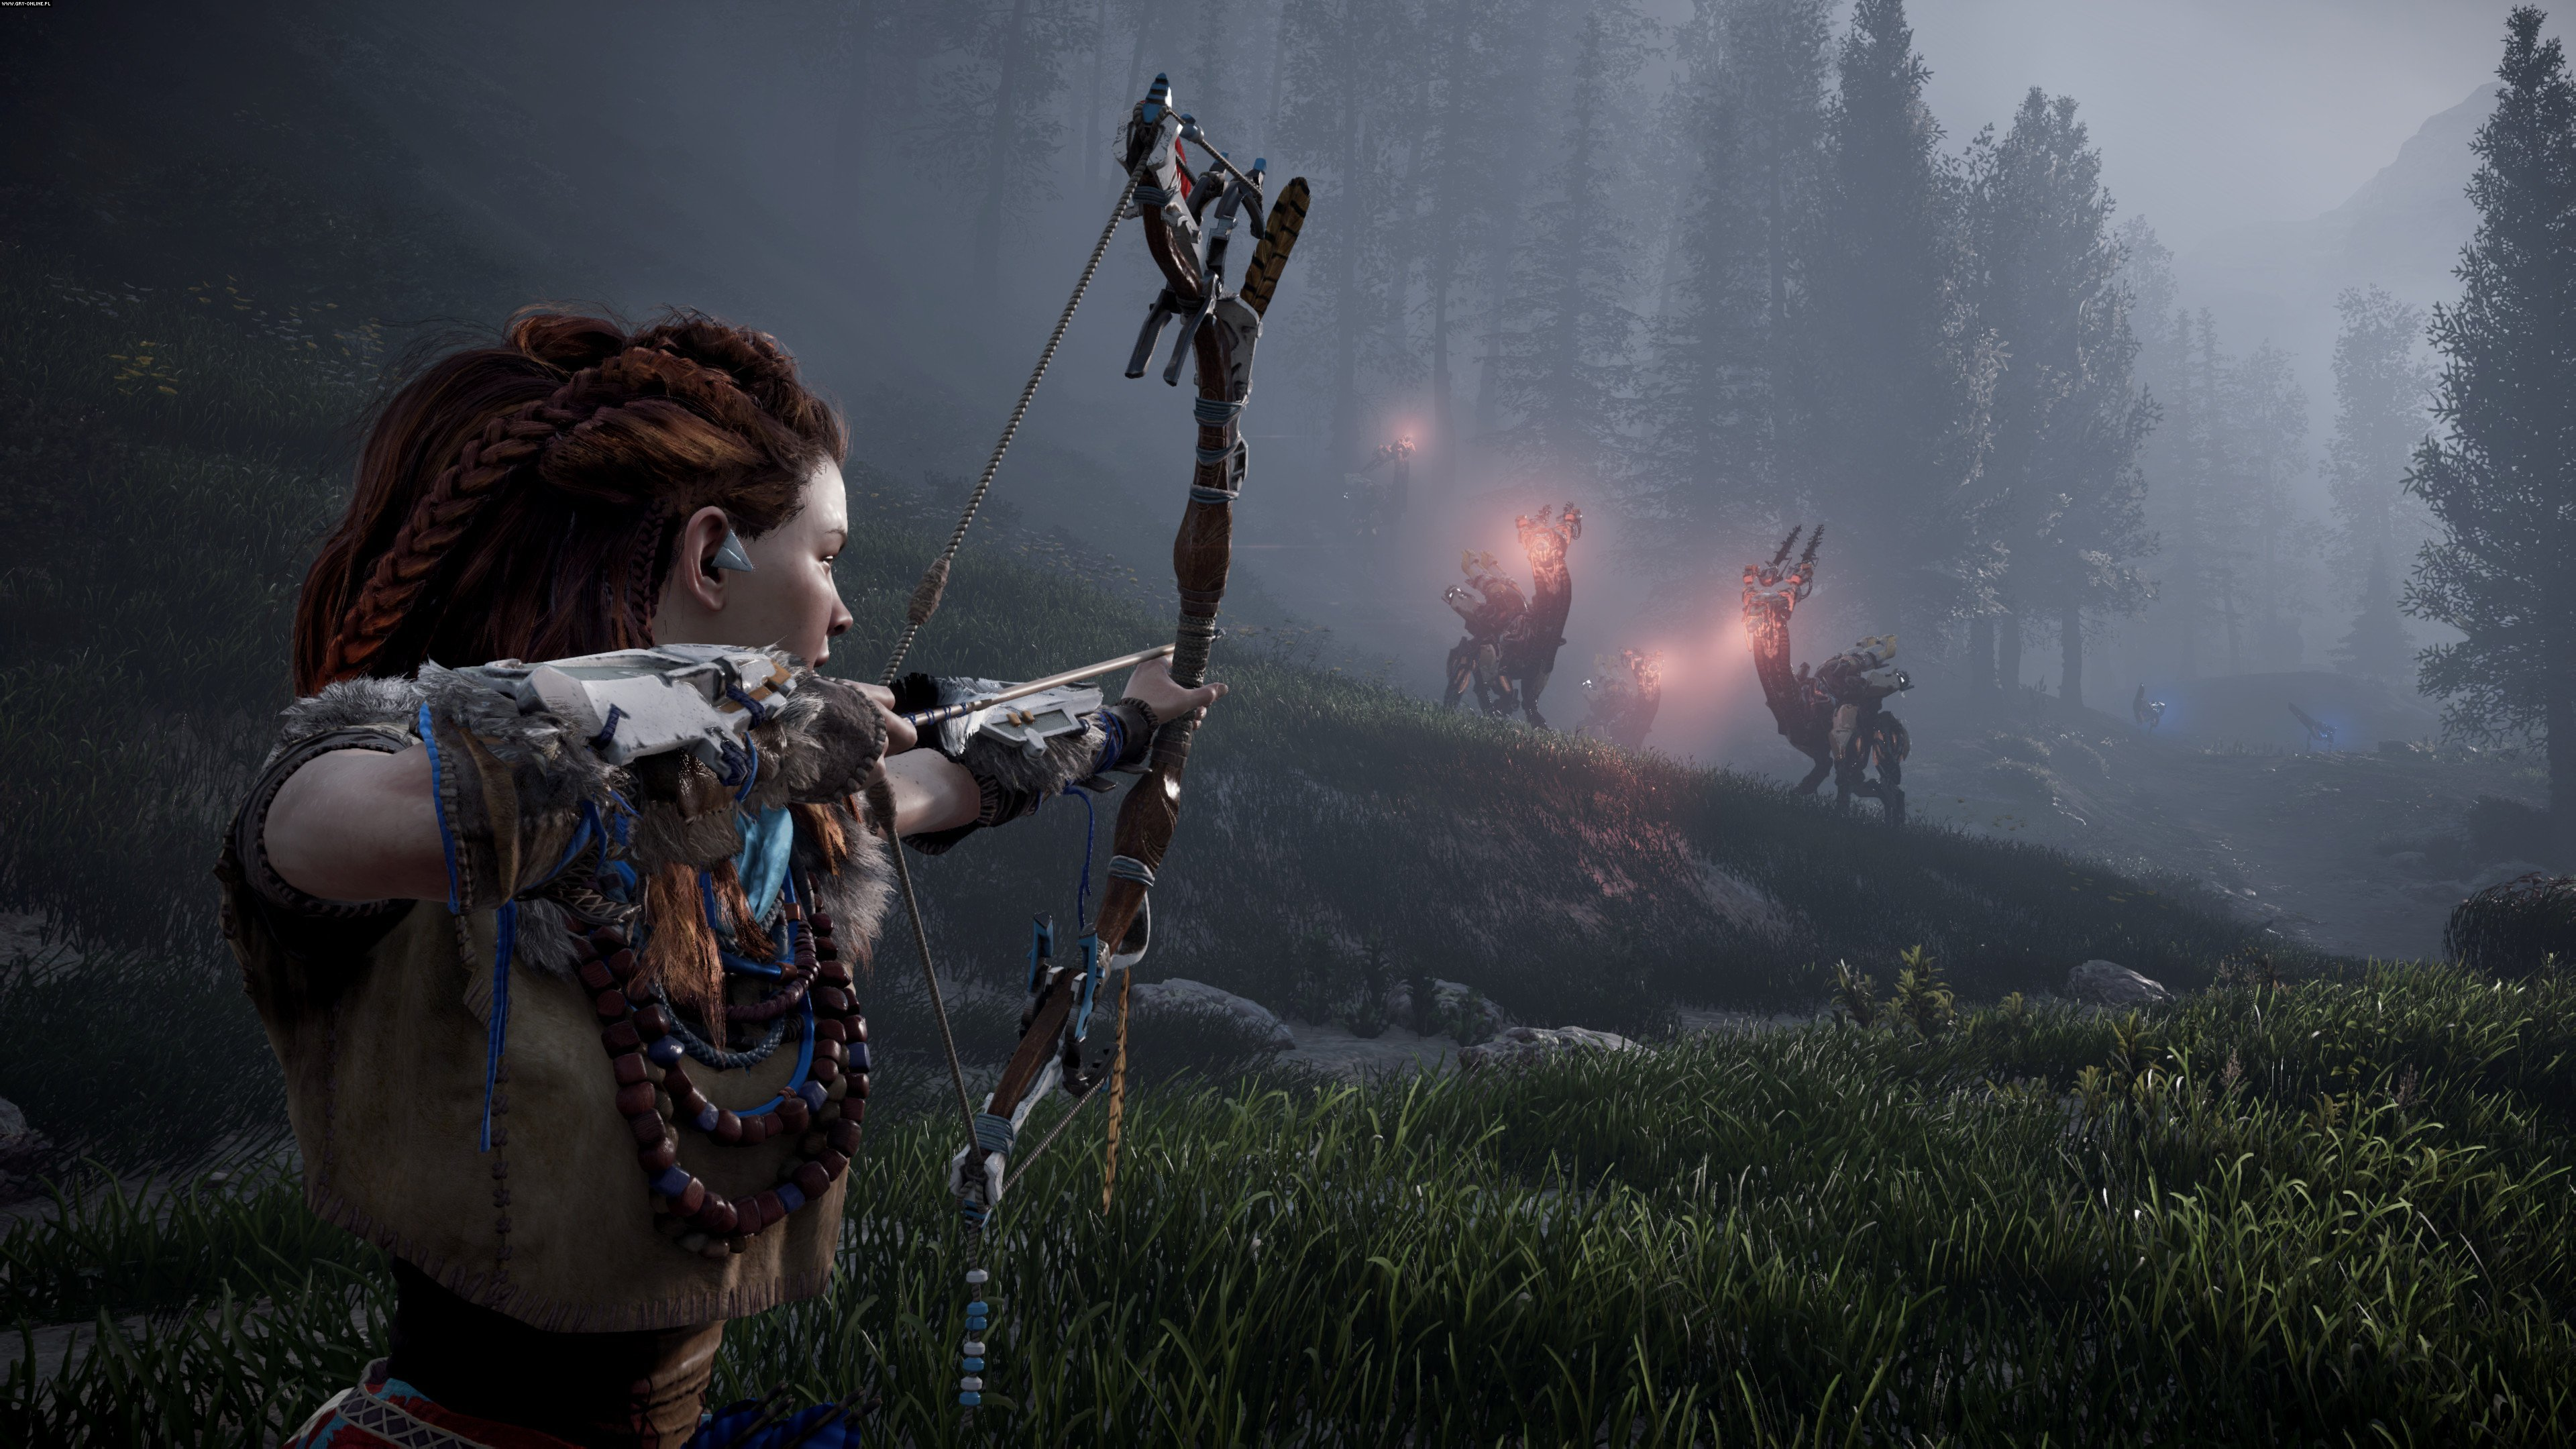 Horizon: Zero Dawn PS4 Gry Screen 78/131, Guerrilla Games, Sony Interactive Entertainment